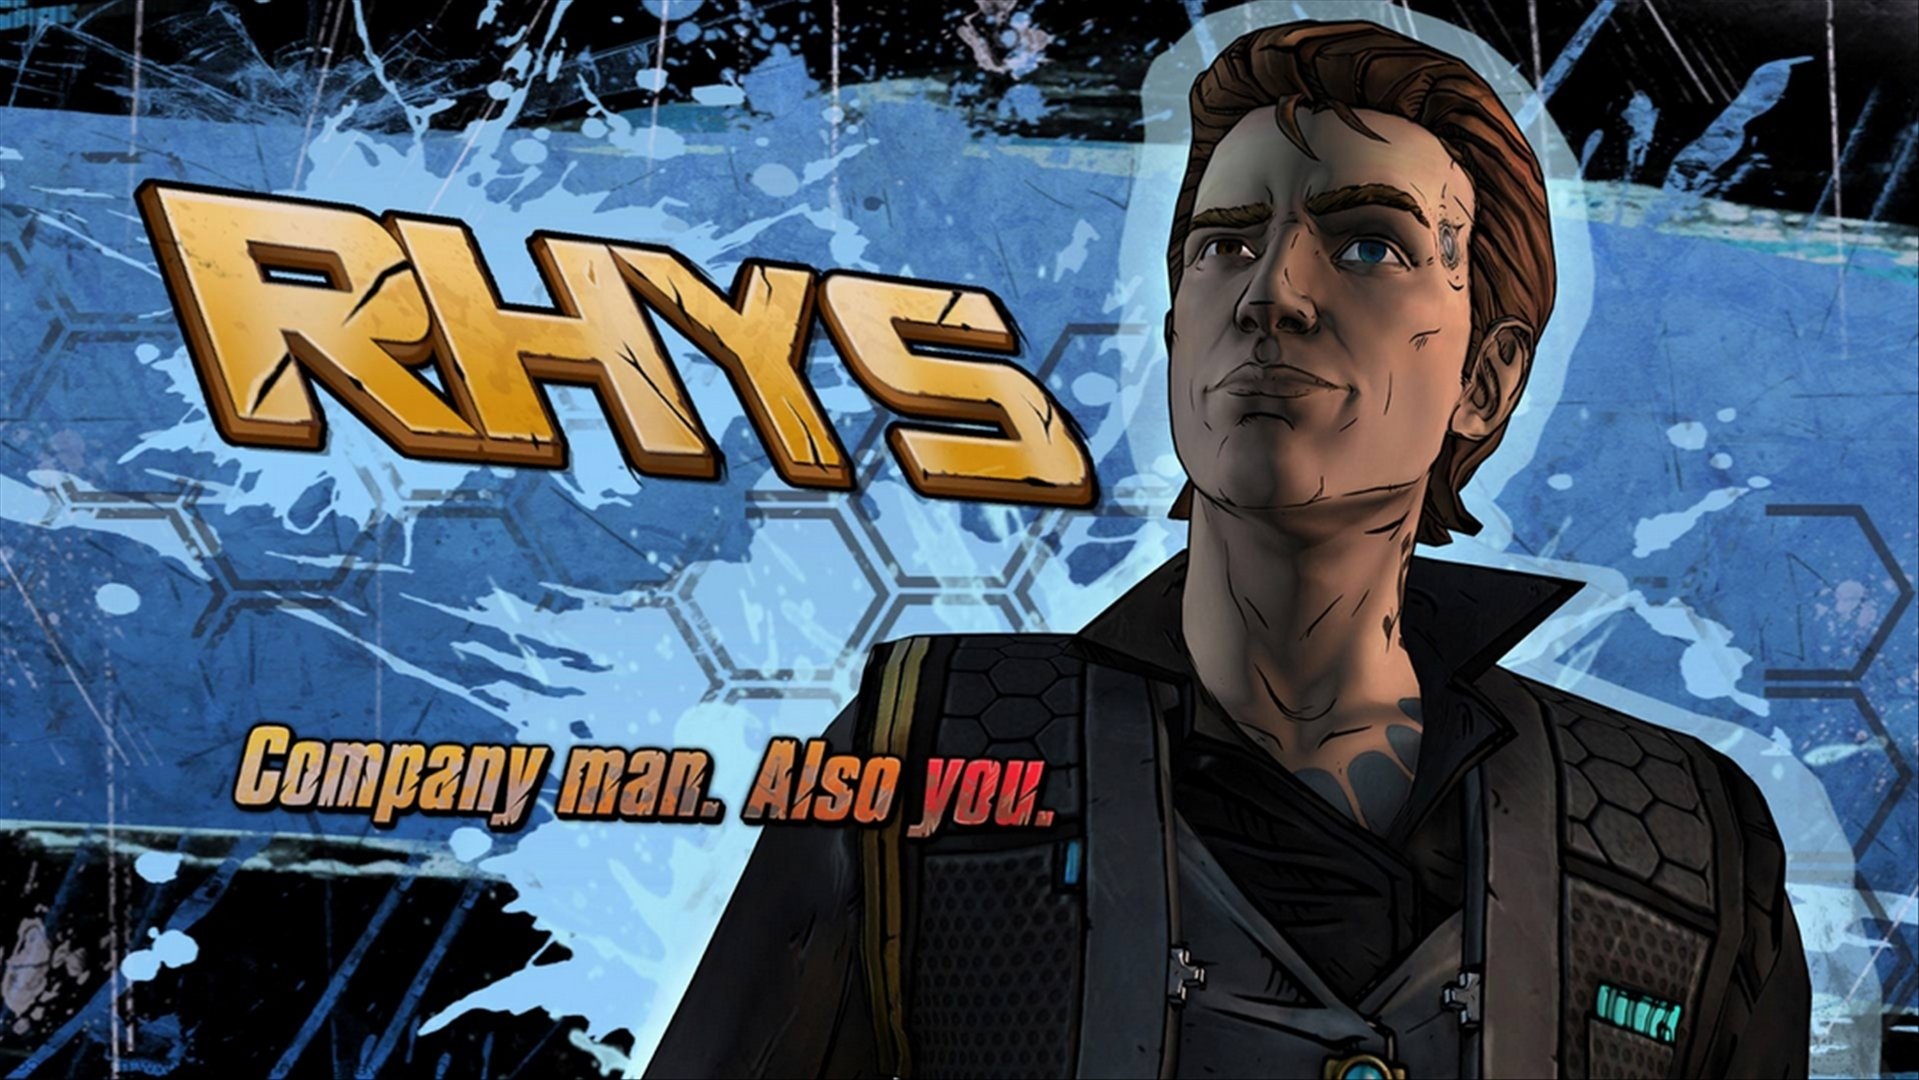 Tales from the Borderlands Android image 6